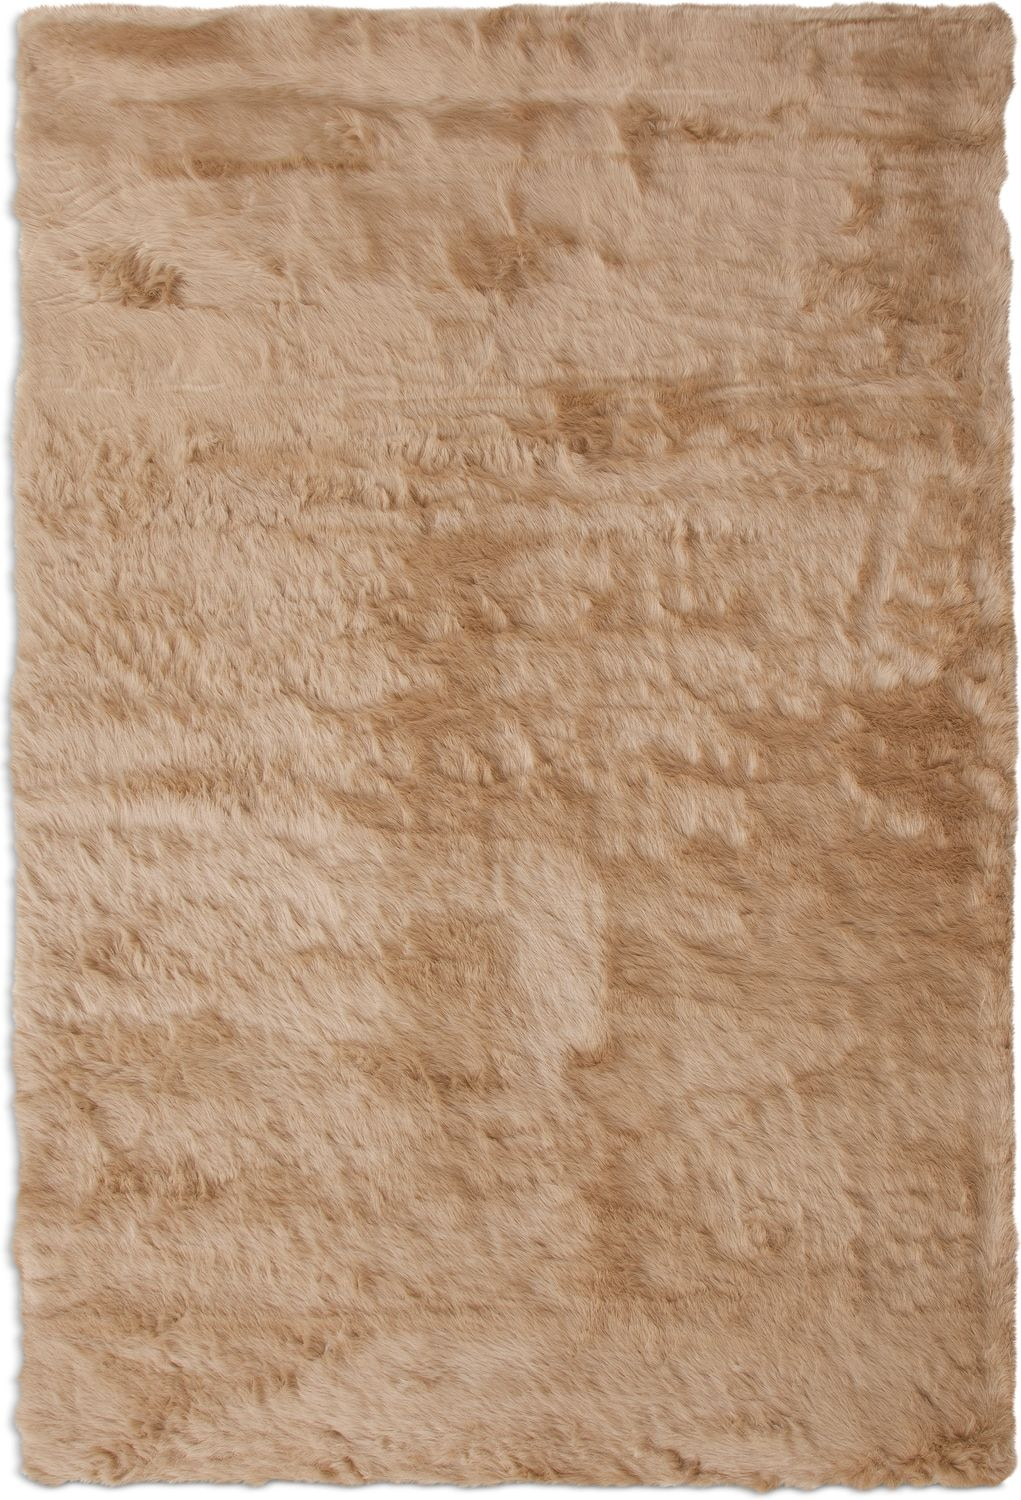 Rugs - Faux Mink Fur Area Rug - Tan